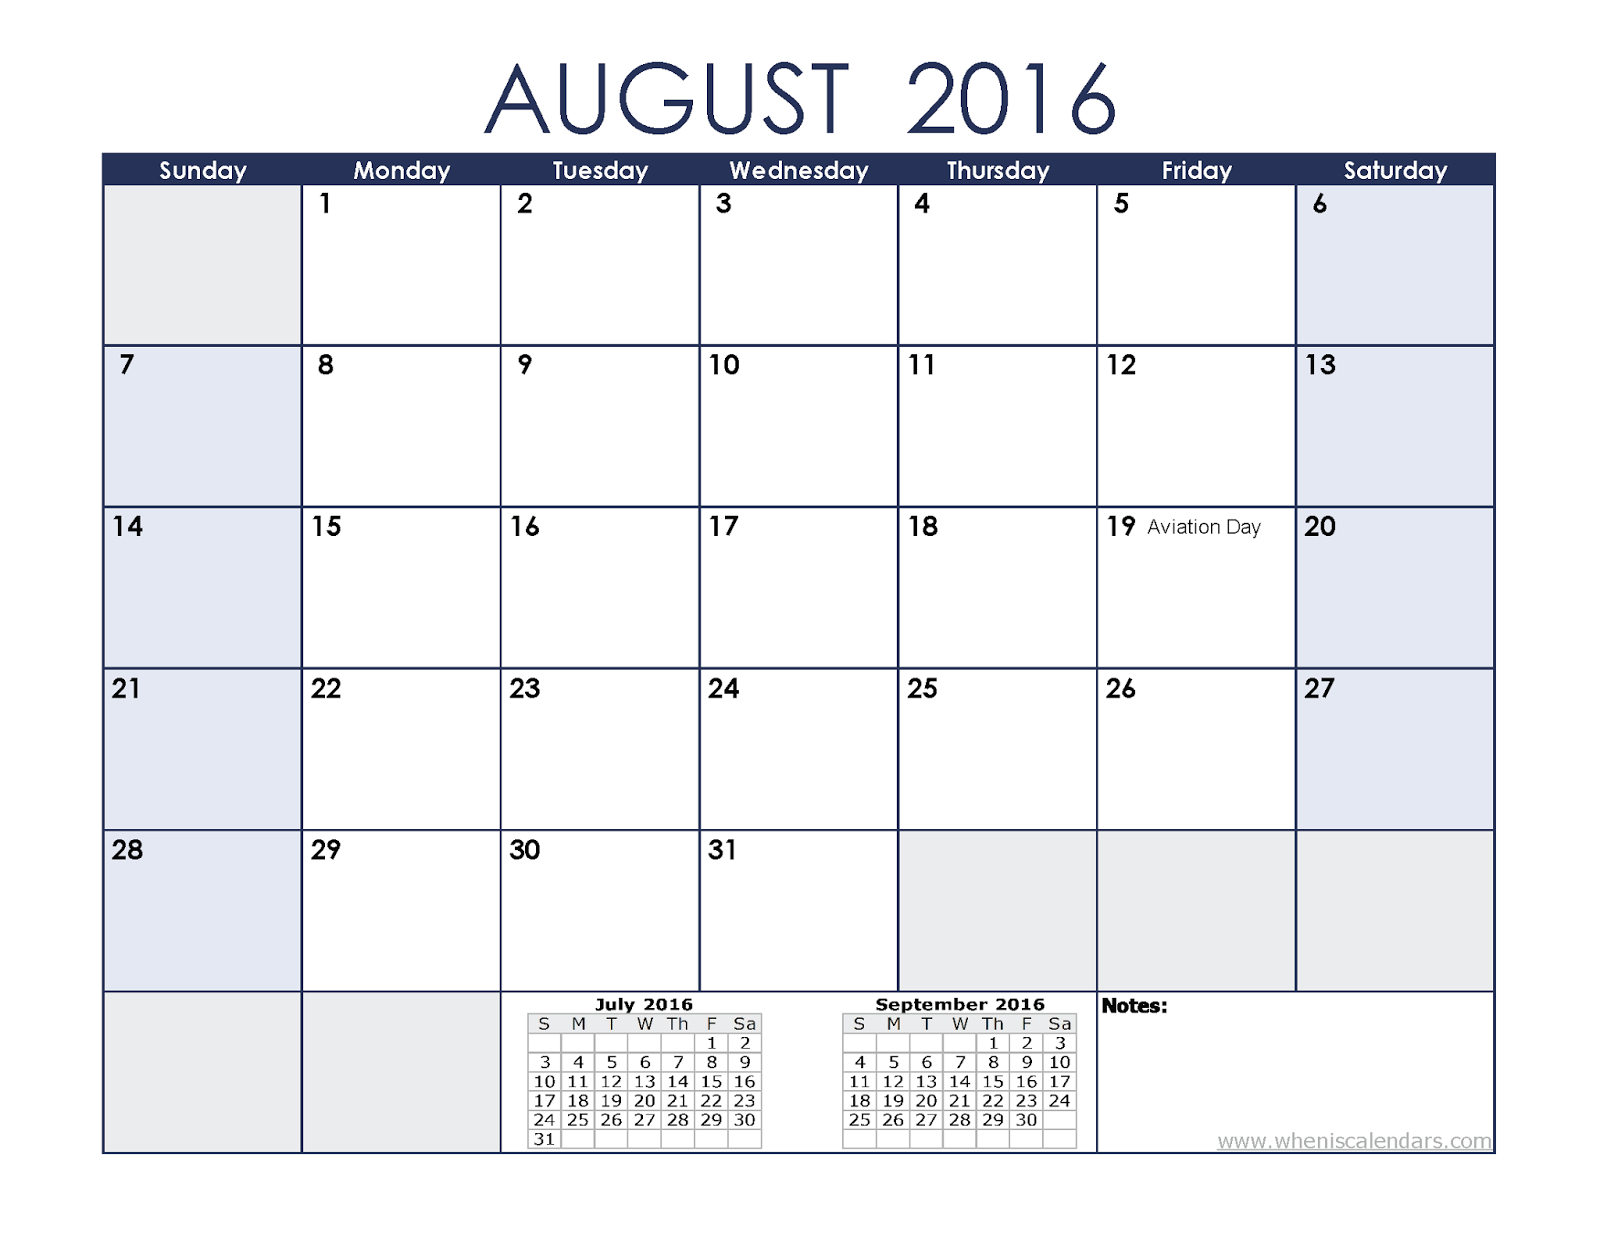 023 Blank Calendar Template July Holidays Page 09 Wonderful intended for July 2016 Calendar With Holidays